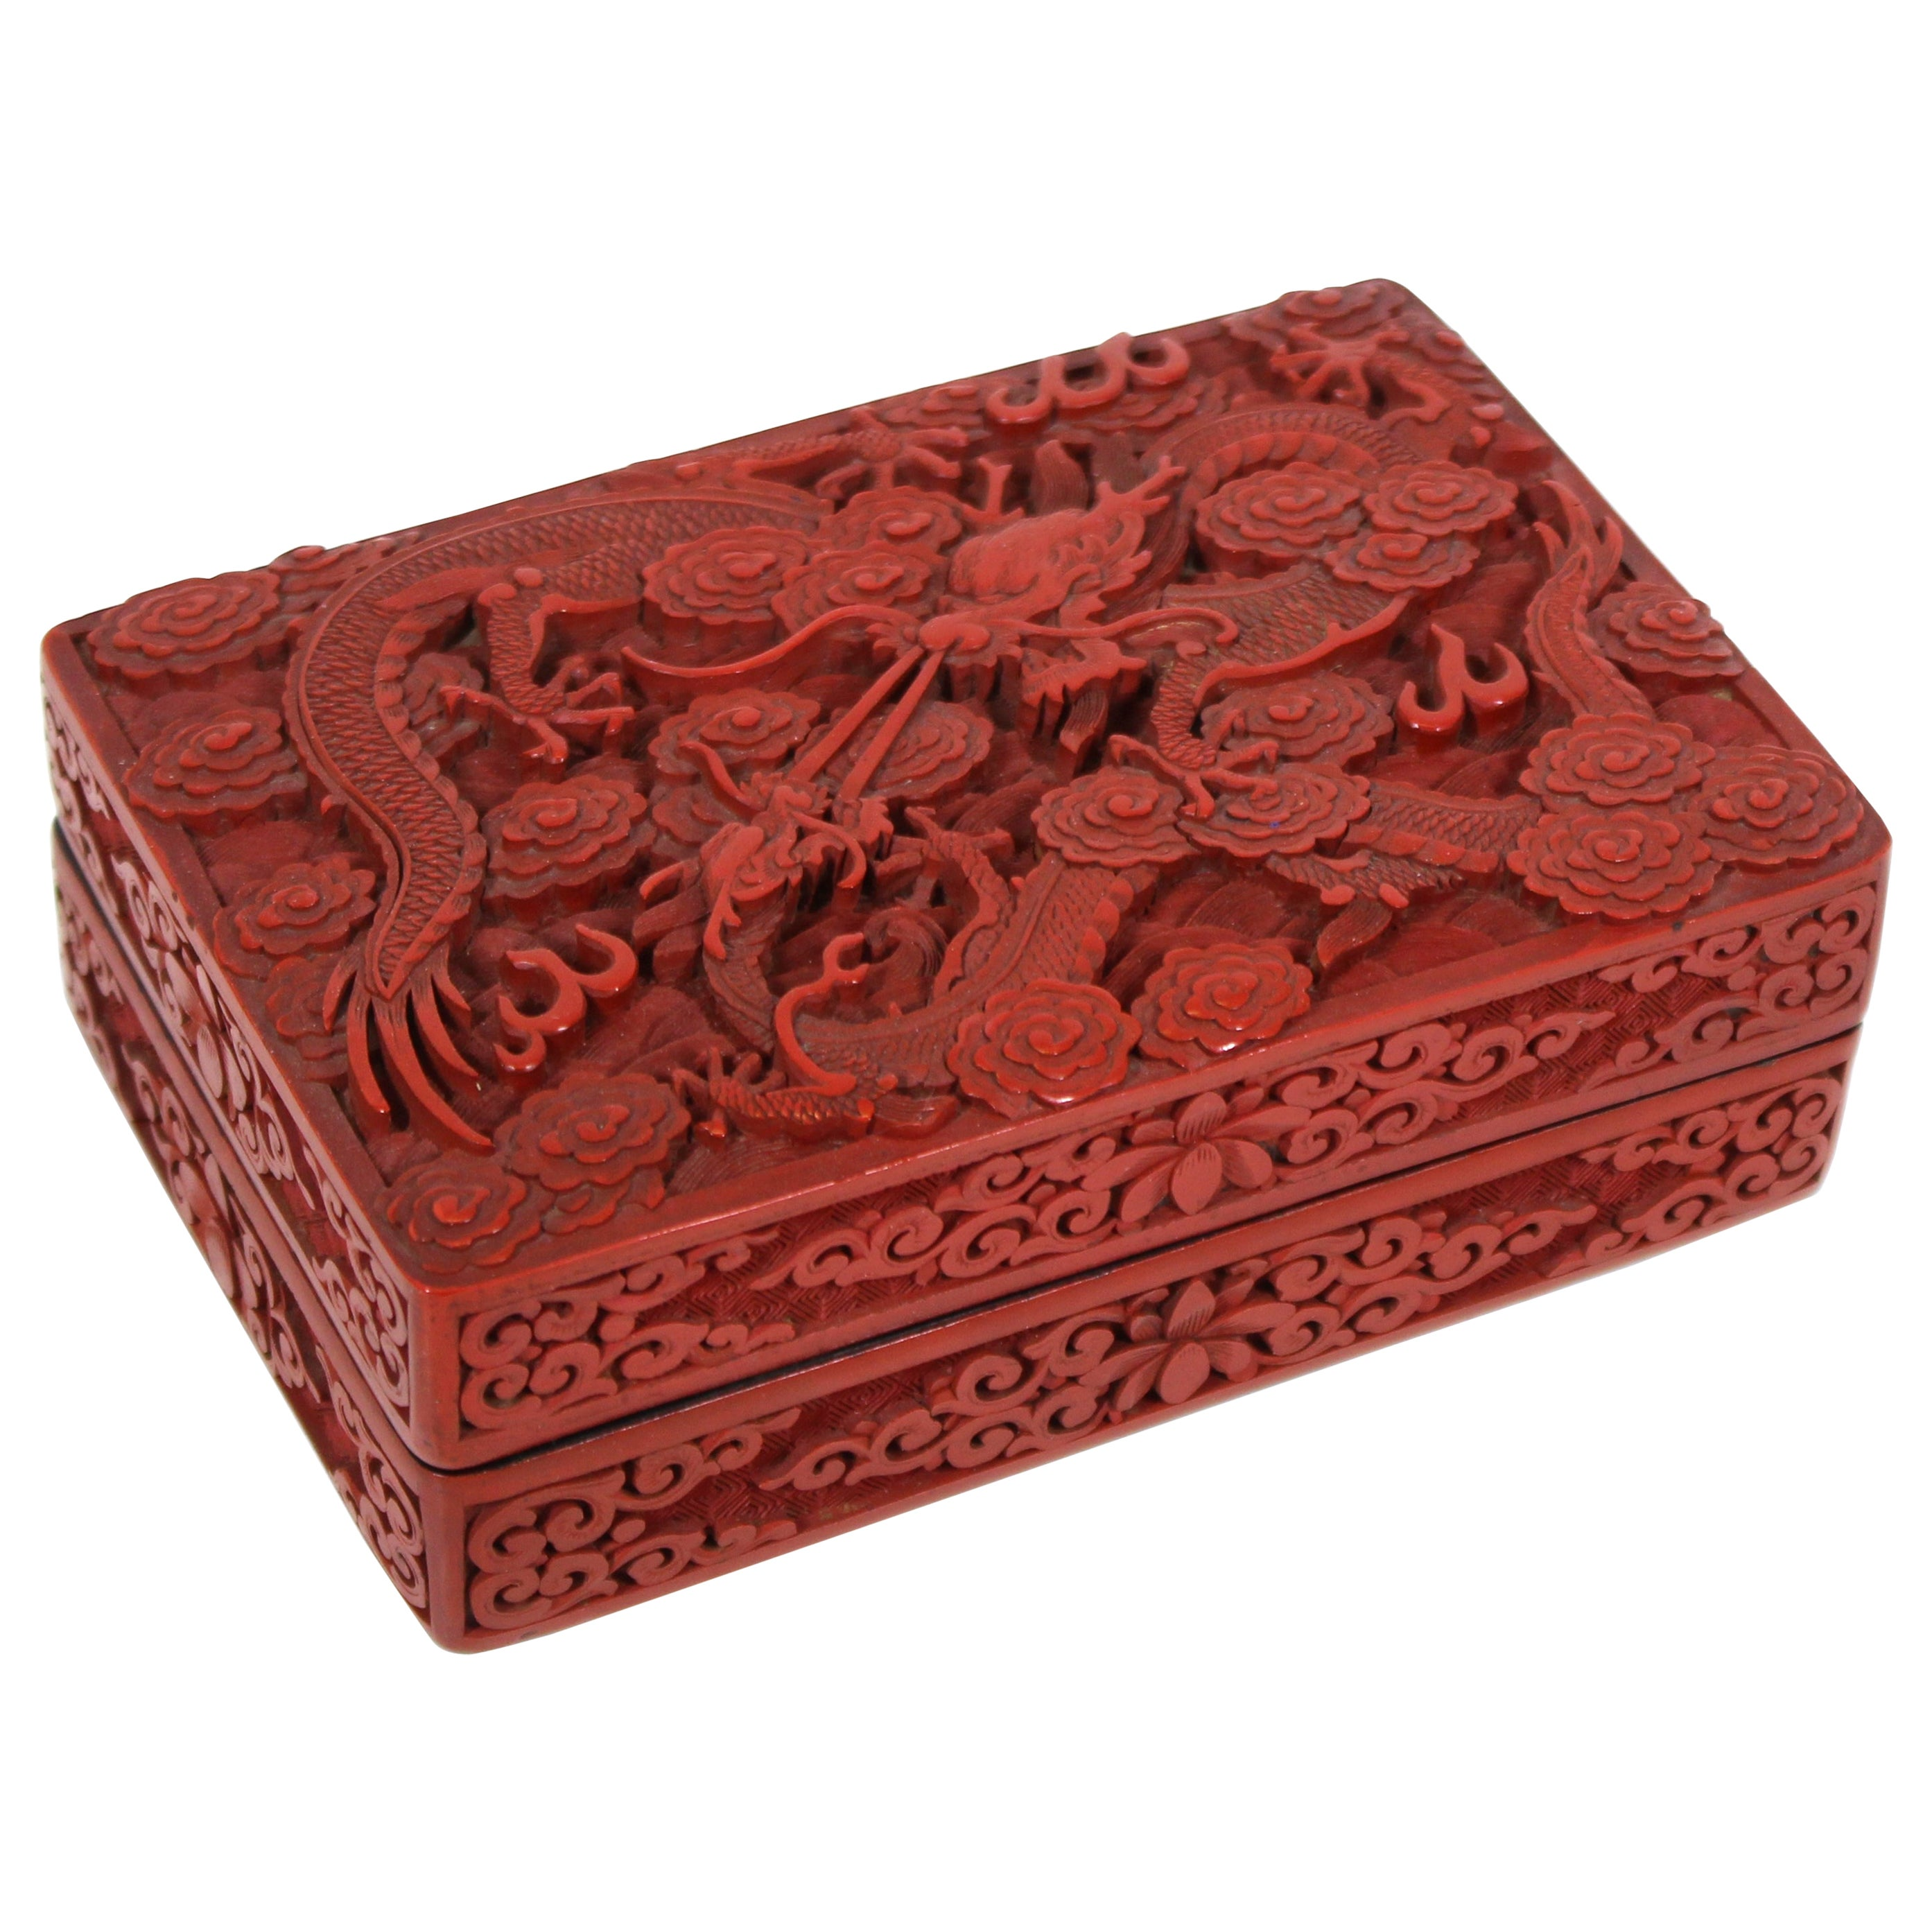 Chinese Red Cinnabar Box with Dragon Motif